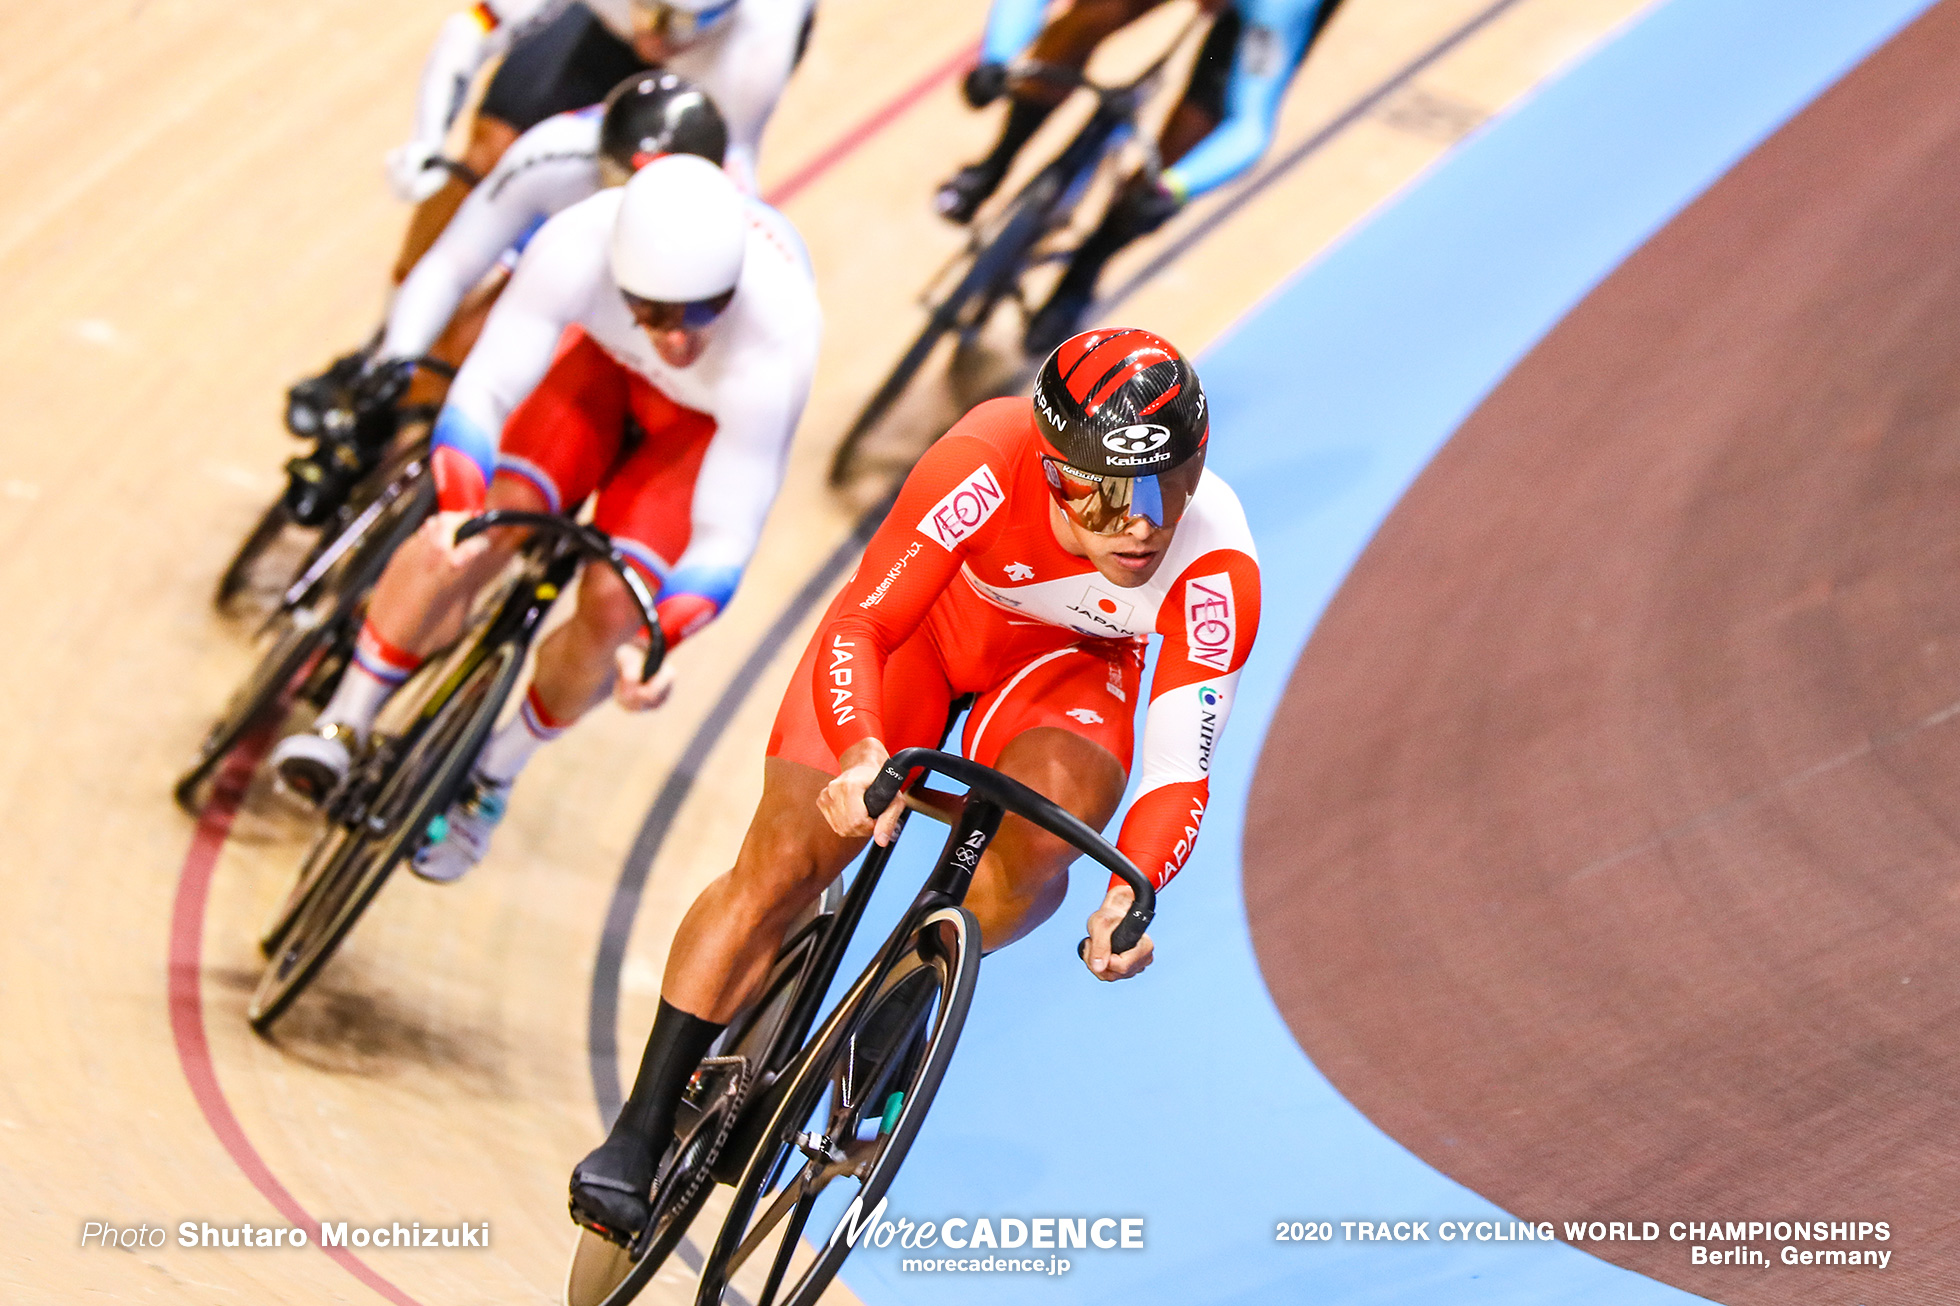 1st Round Repechage / Men's Keirin / 2020 Track Cycling World Championships